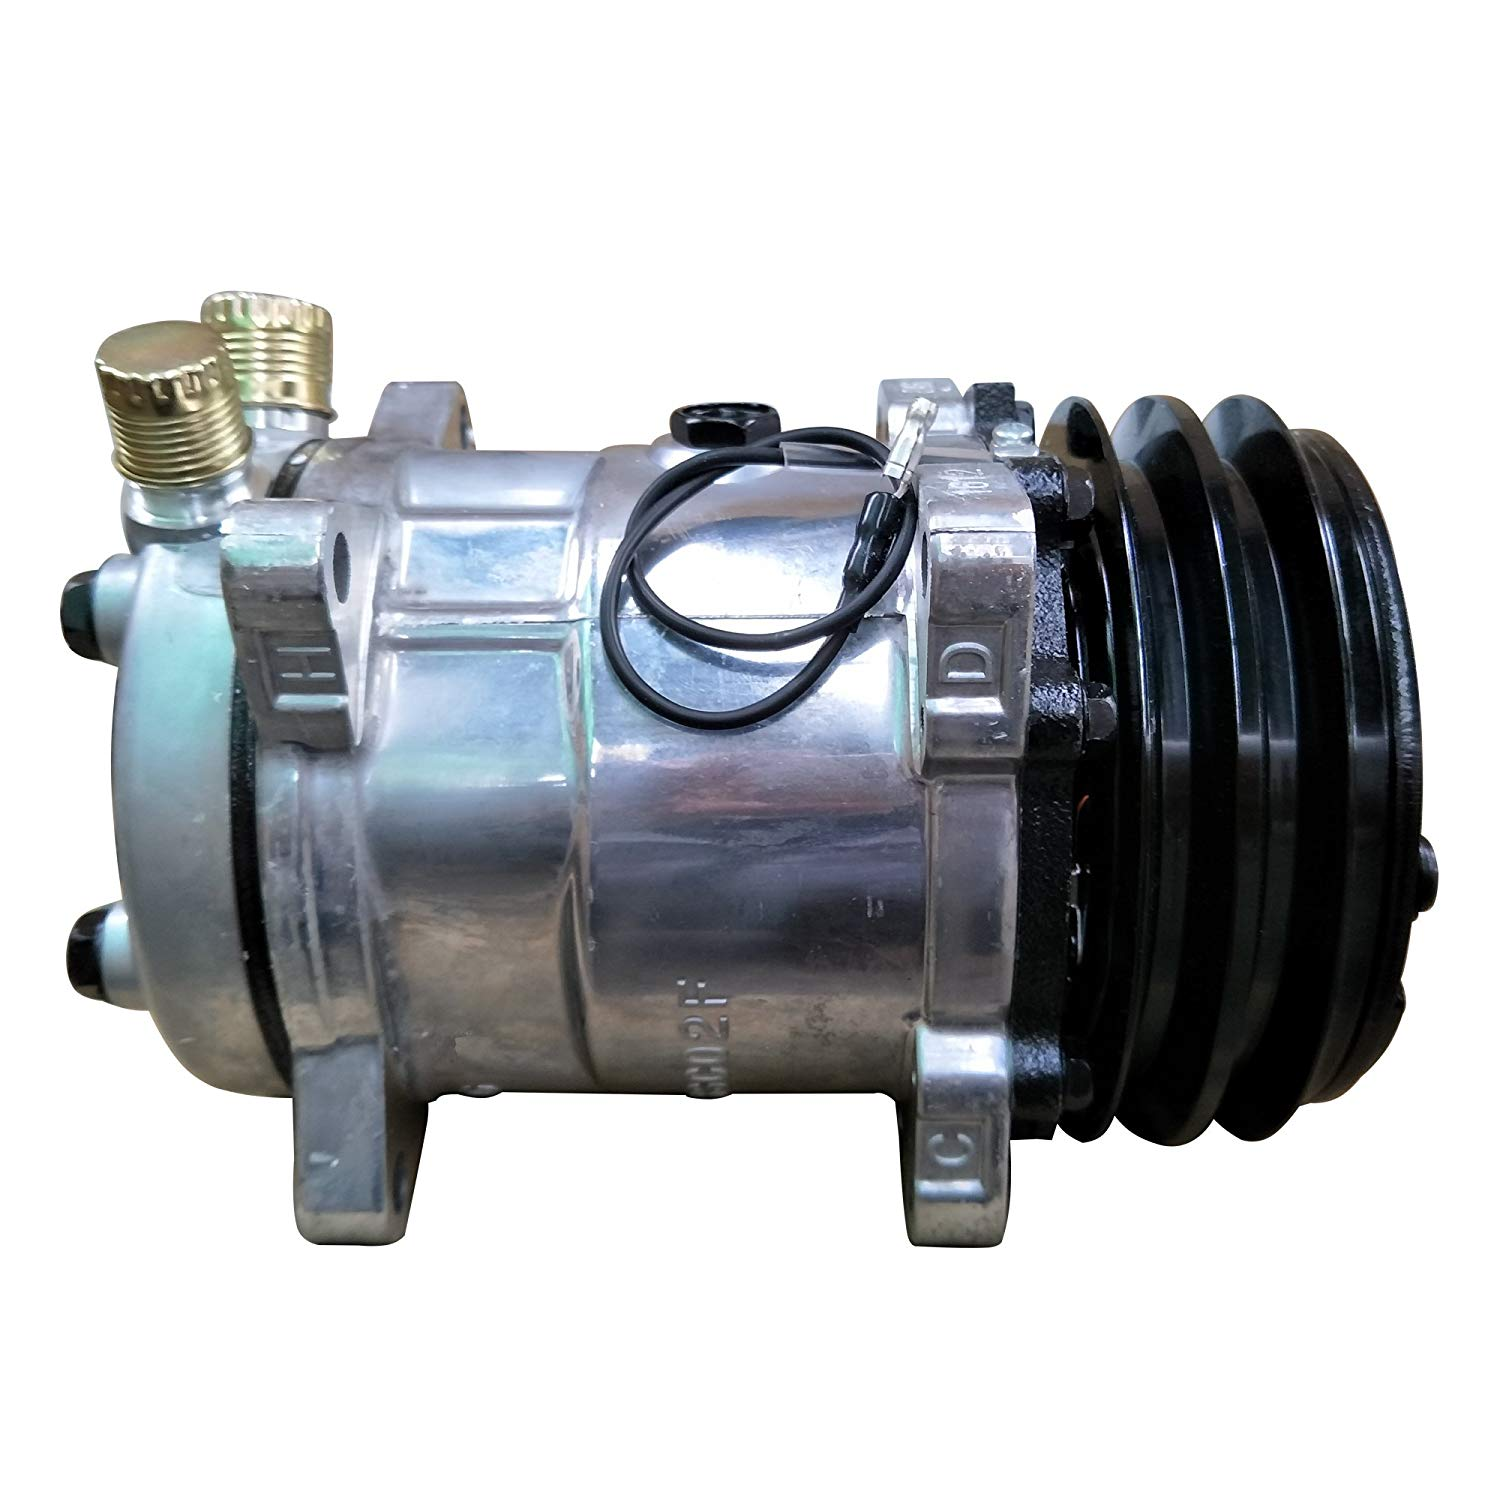 Universal AC Compressor with Black 2PK Clutch Sanden 508 5H14 R134A